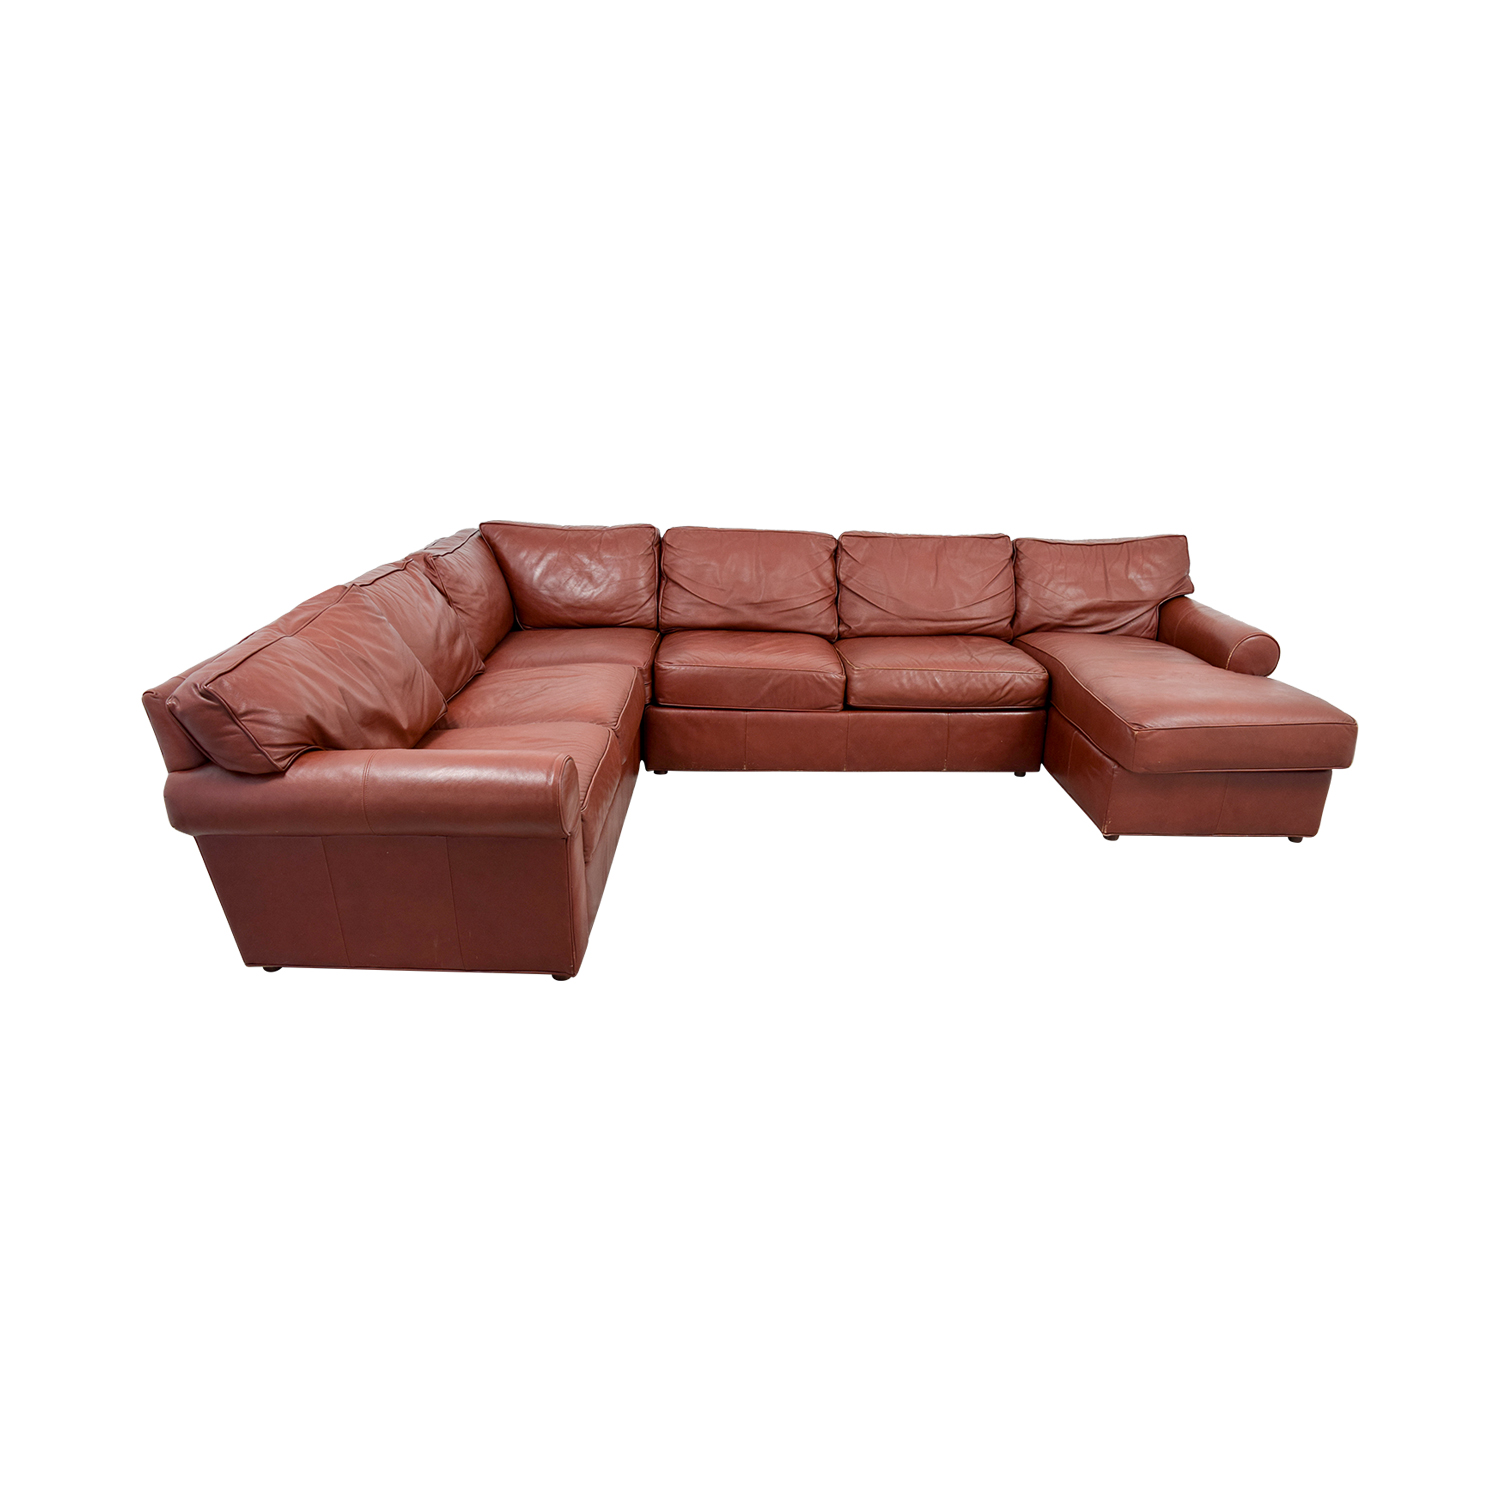 Ethan Allen Ethan Allen Burgundy Leather Sectional with Lounger nj